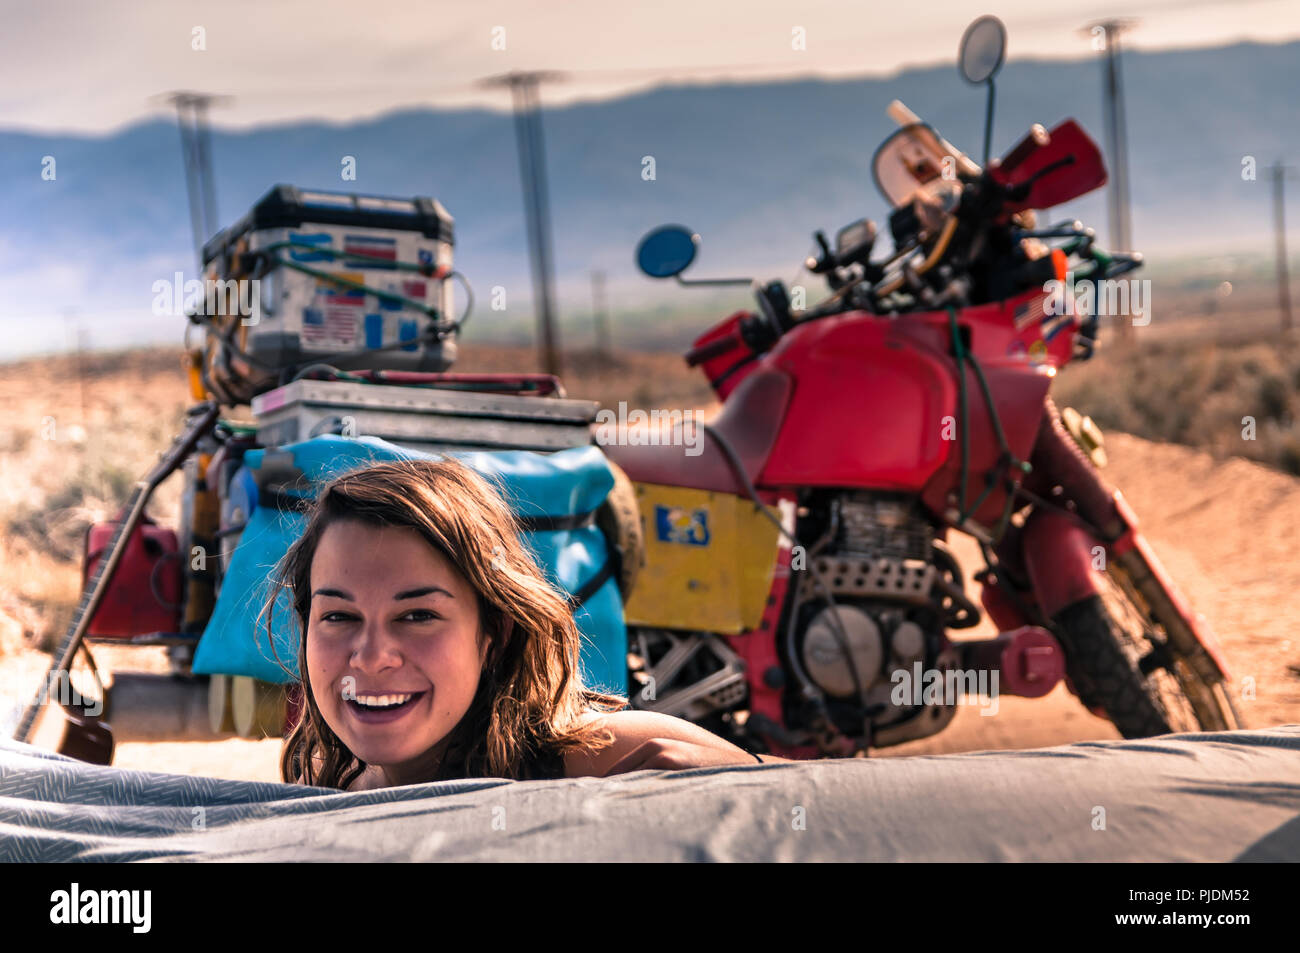 Camping Femme, Bishop, California, USA Banque D'Images